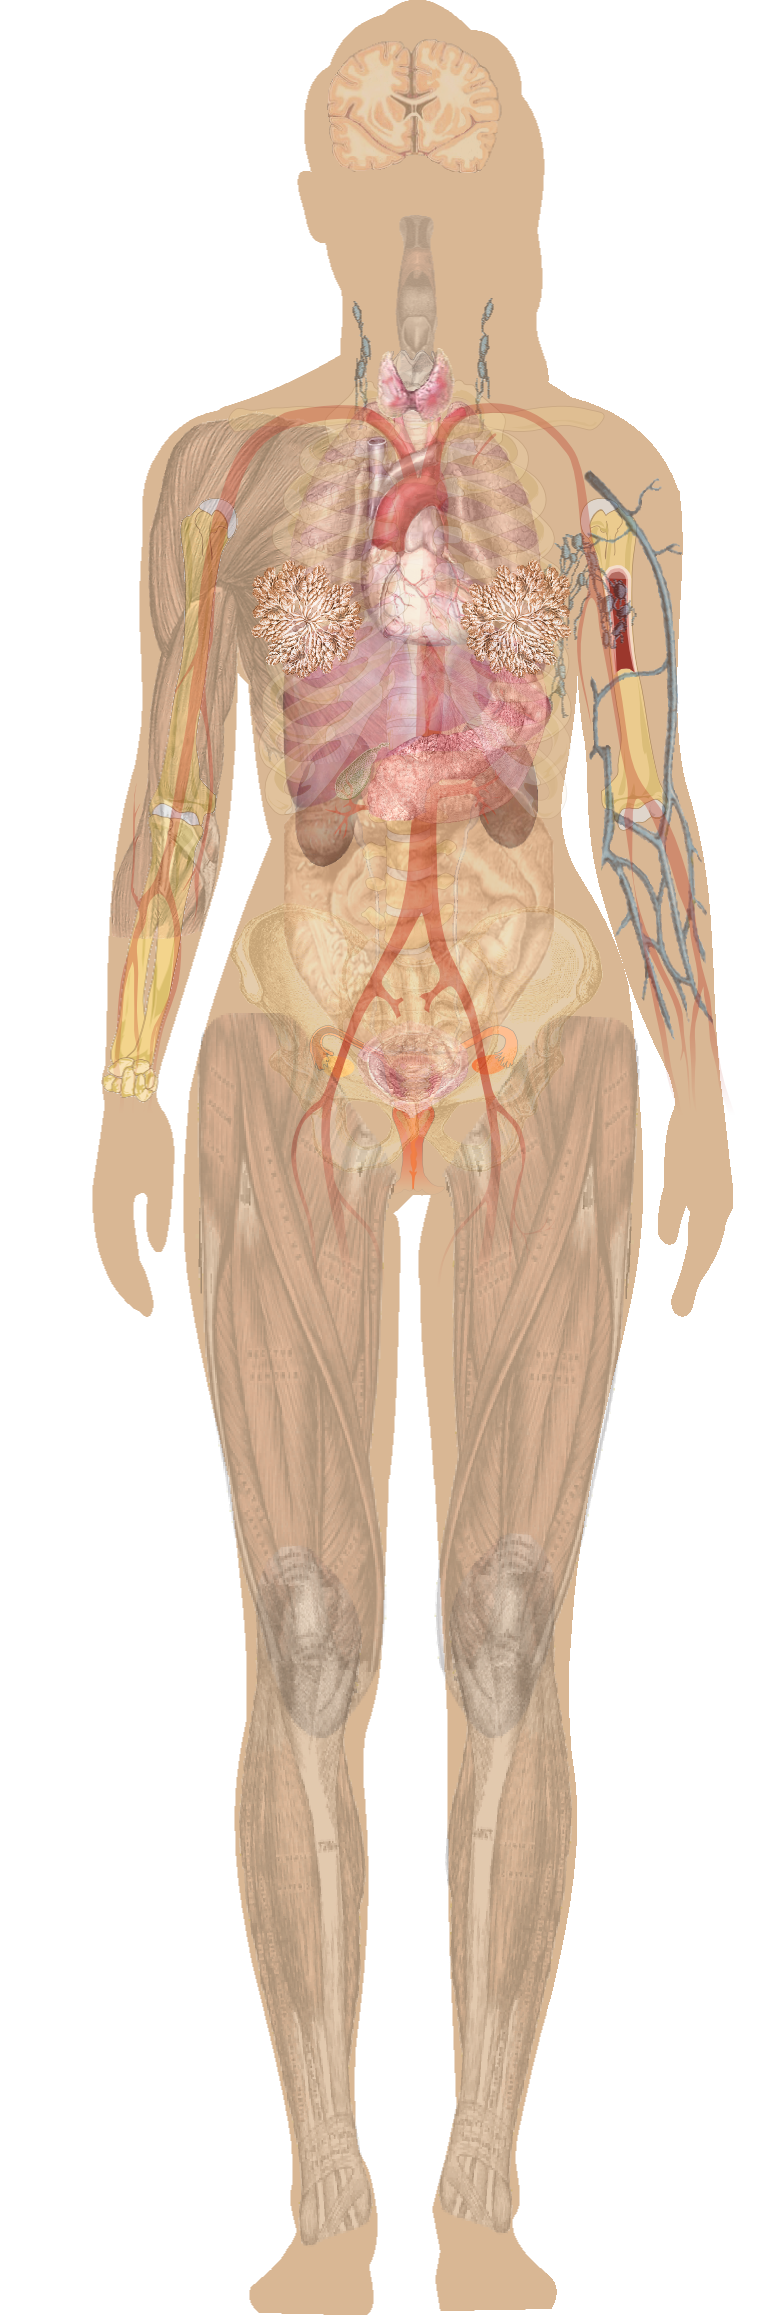 Anatomy of the female body organs